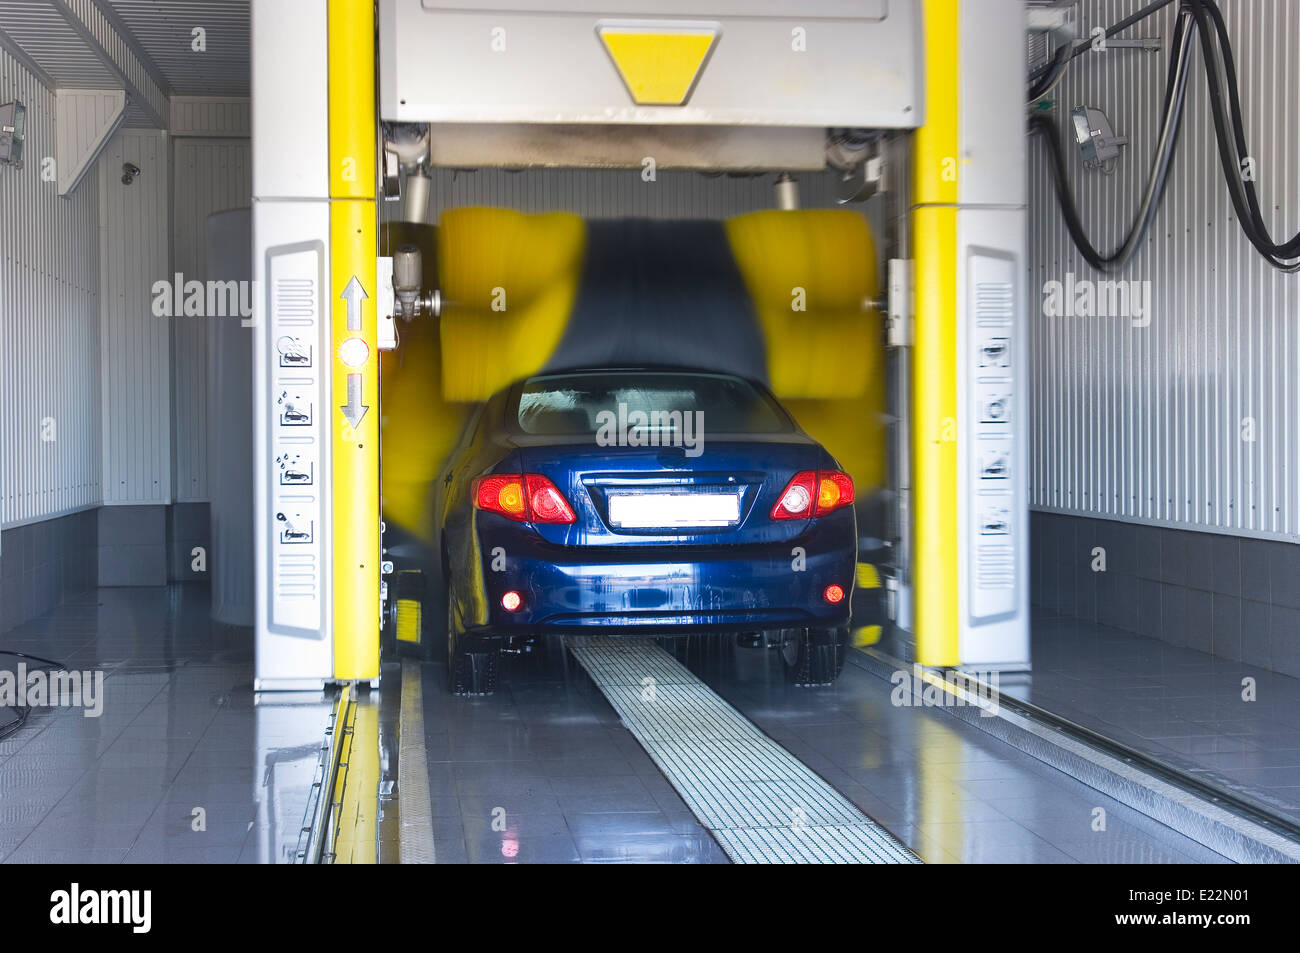 Automatic car wash - very fast and convenient service - Stock Image